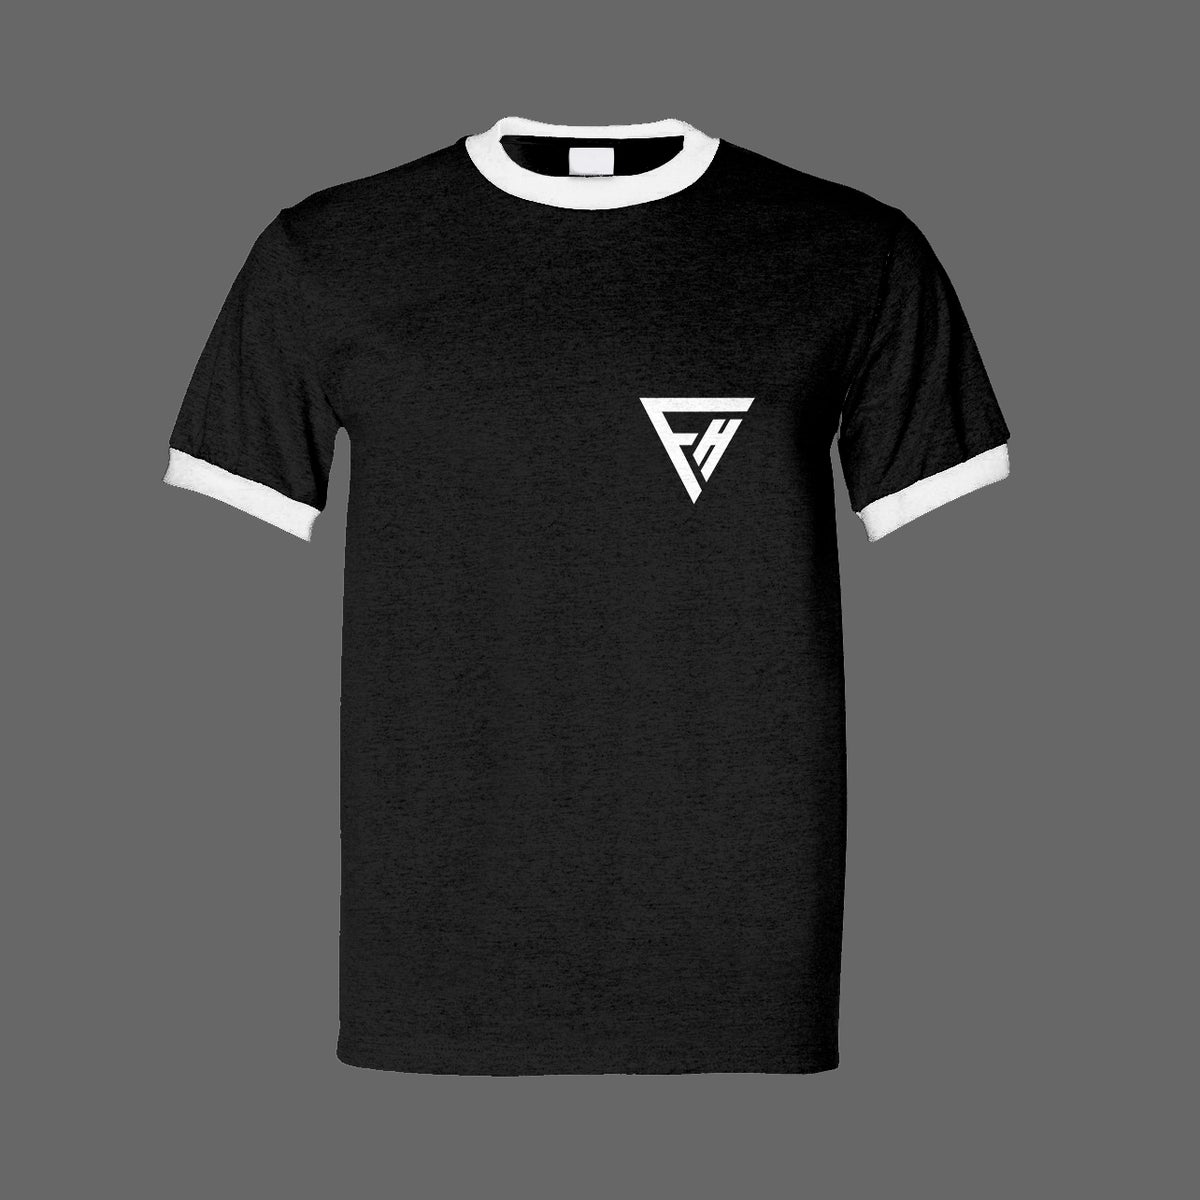 Image of FALSE HEADS black logo tee